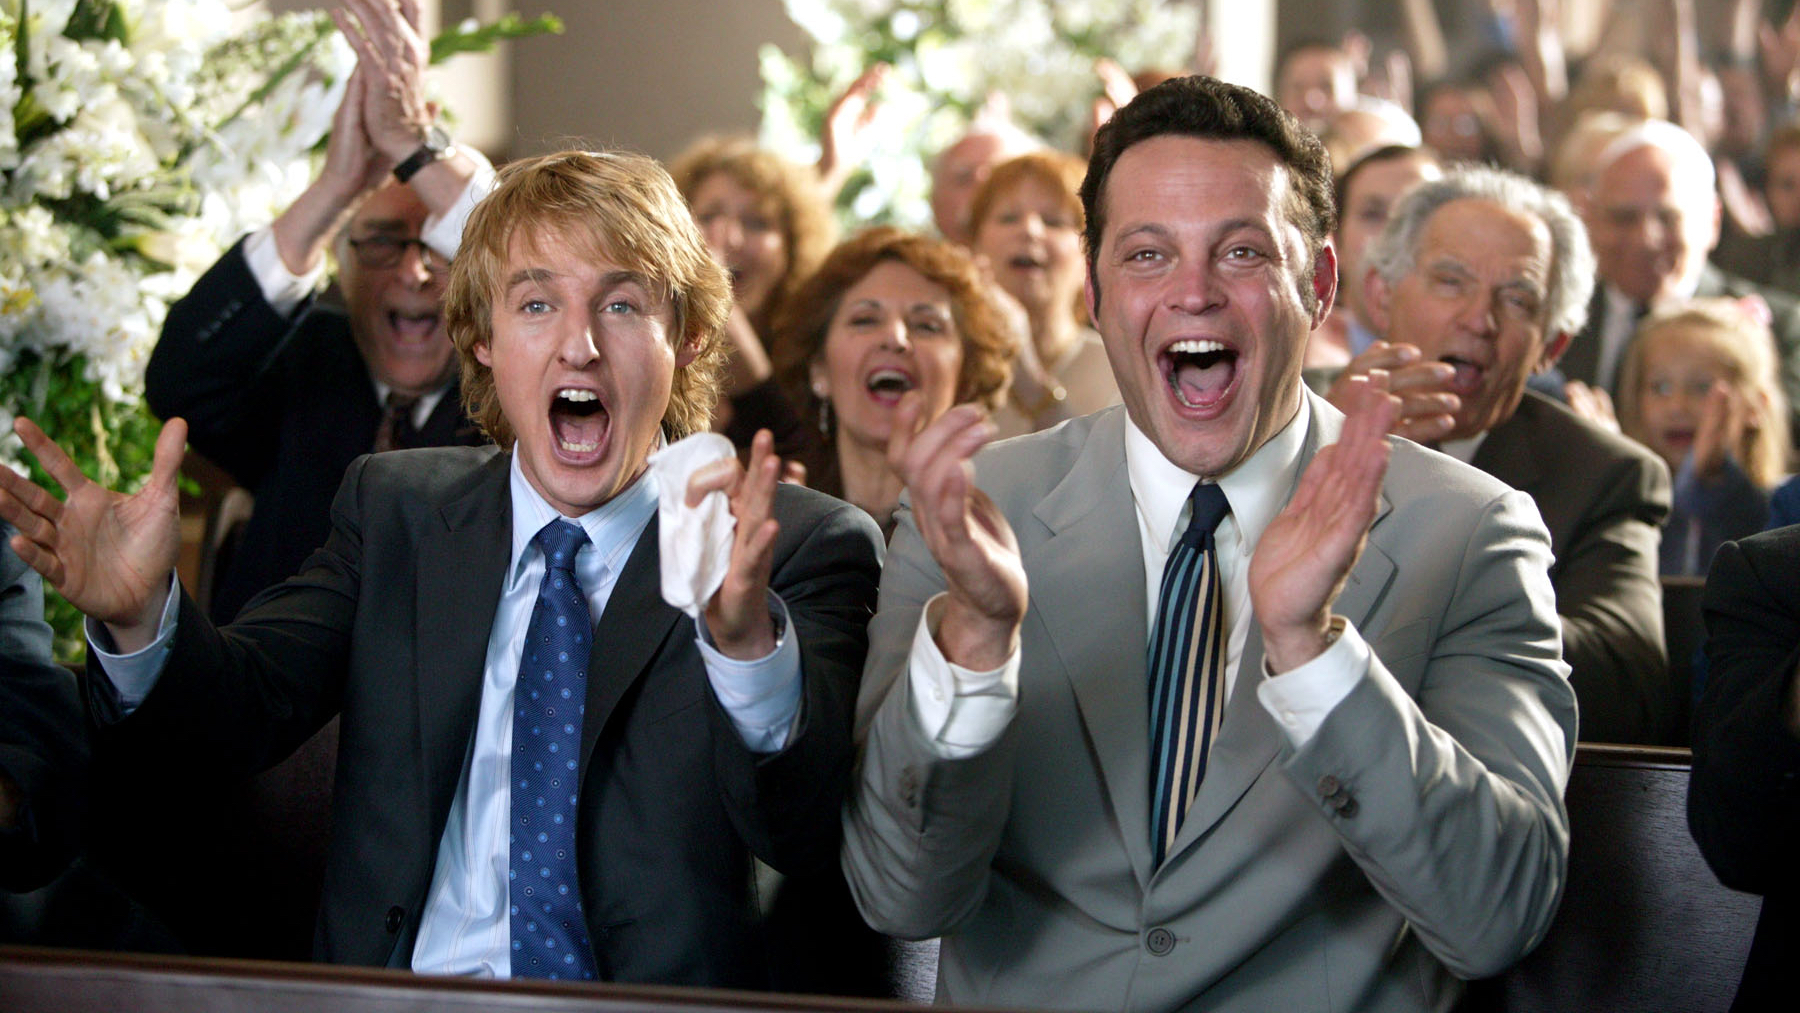 owen-wilson-on-'wedding-crashers'-sequel:-'it's-figuring-out-if-we-could-do-something-worthwhile'